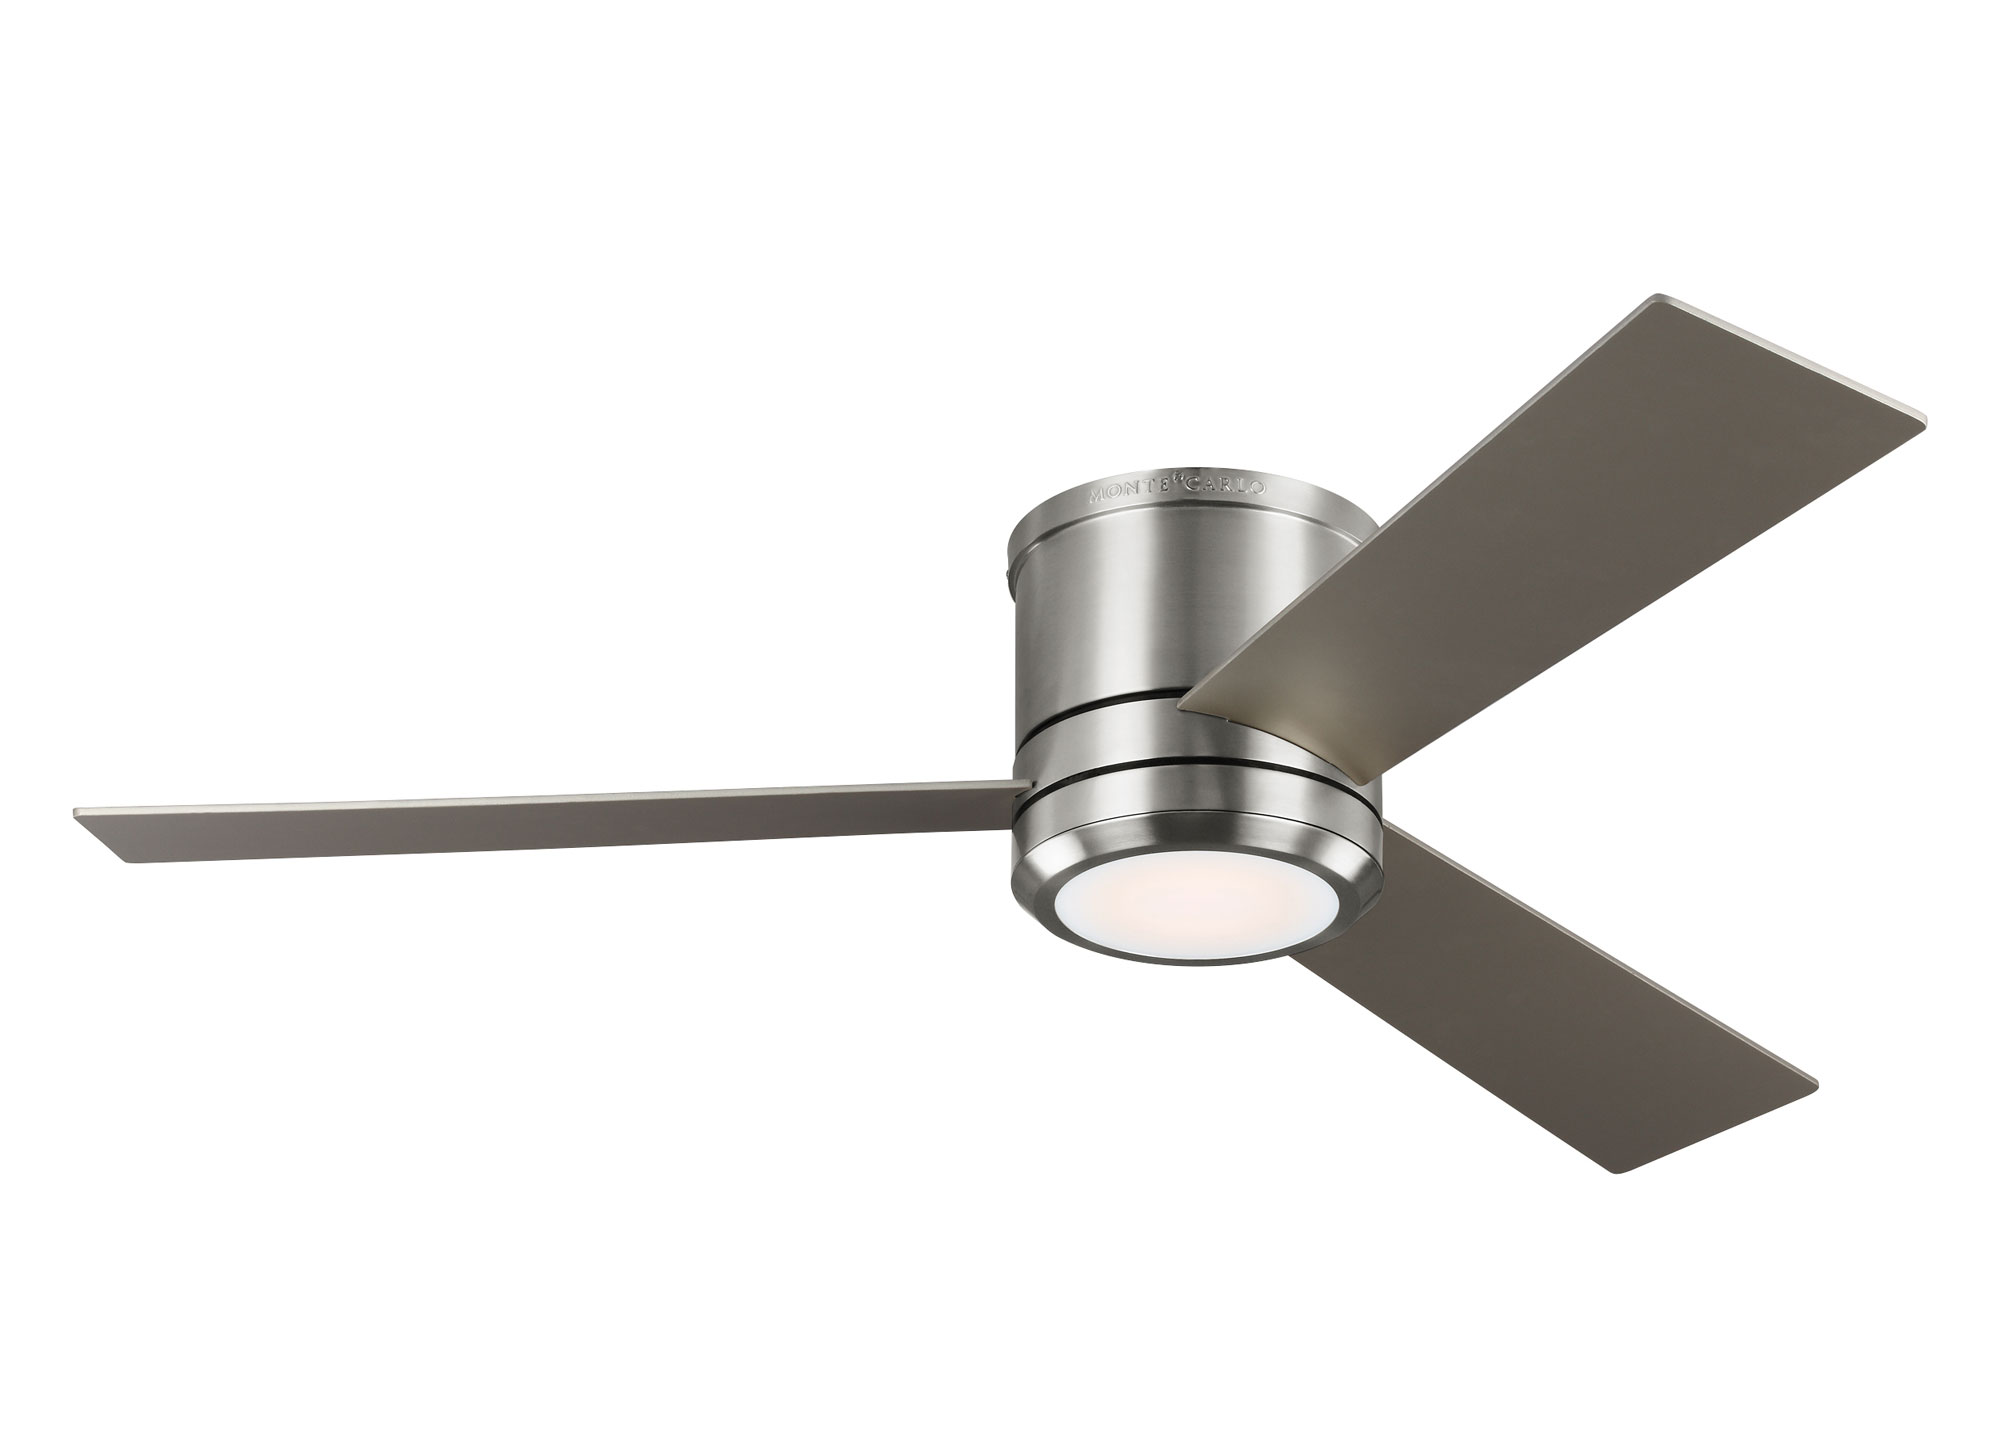 modern ceiling fans clarity max ceiling fan with light DAOTFCX